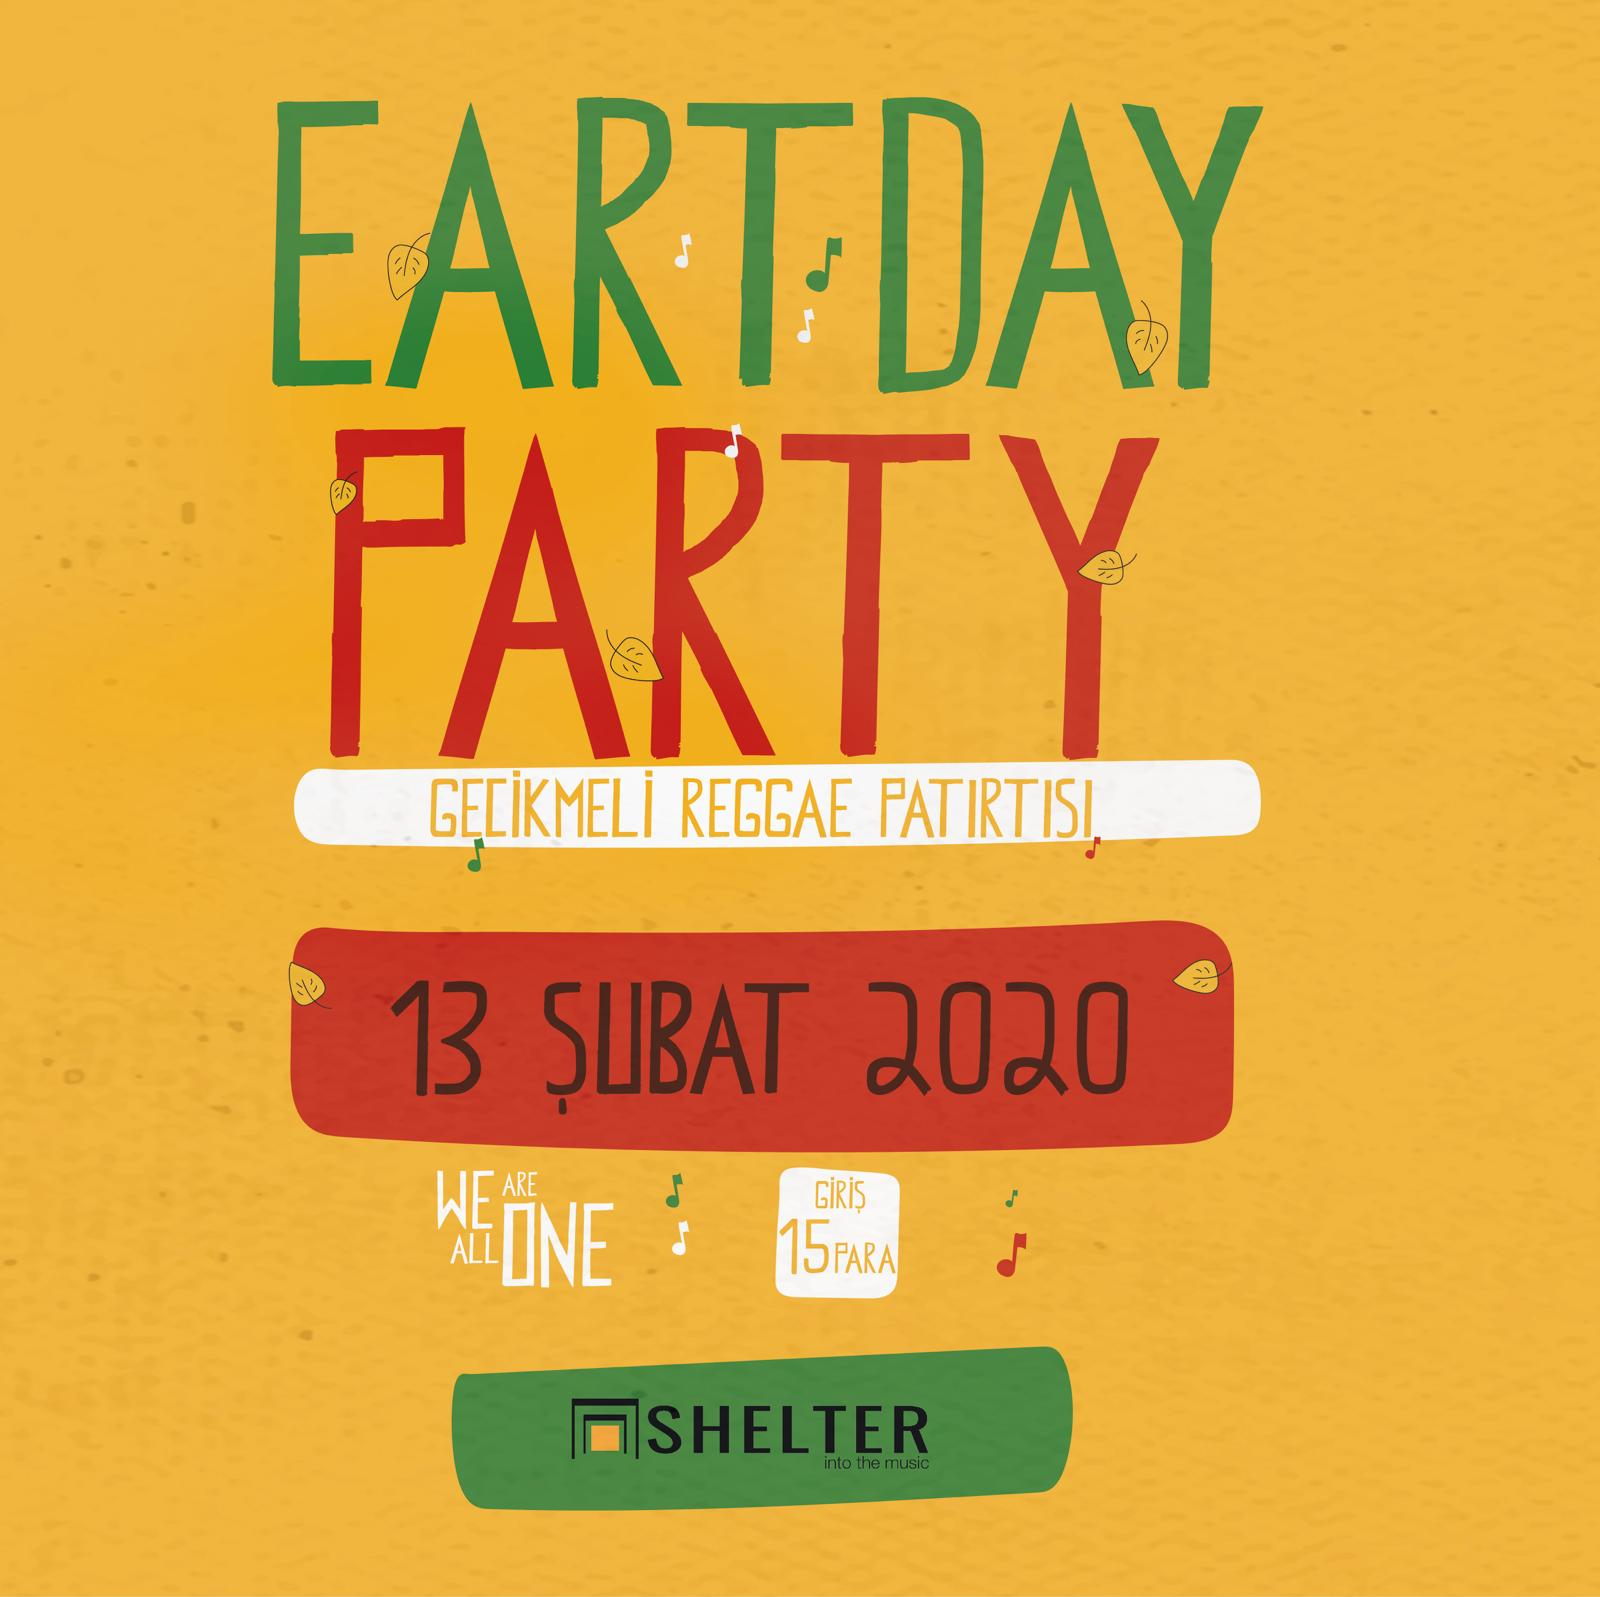 Earthday Party